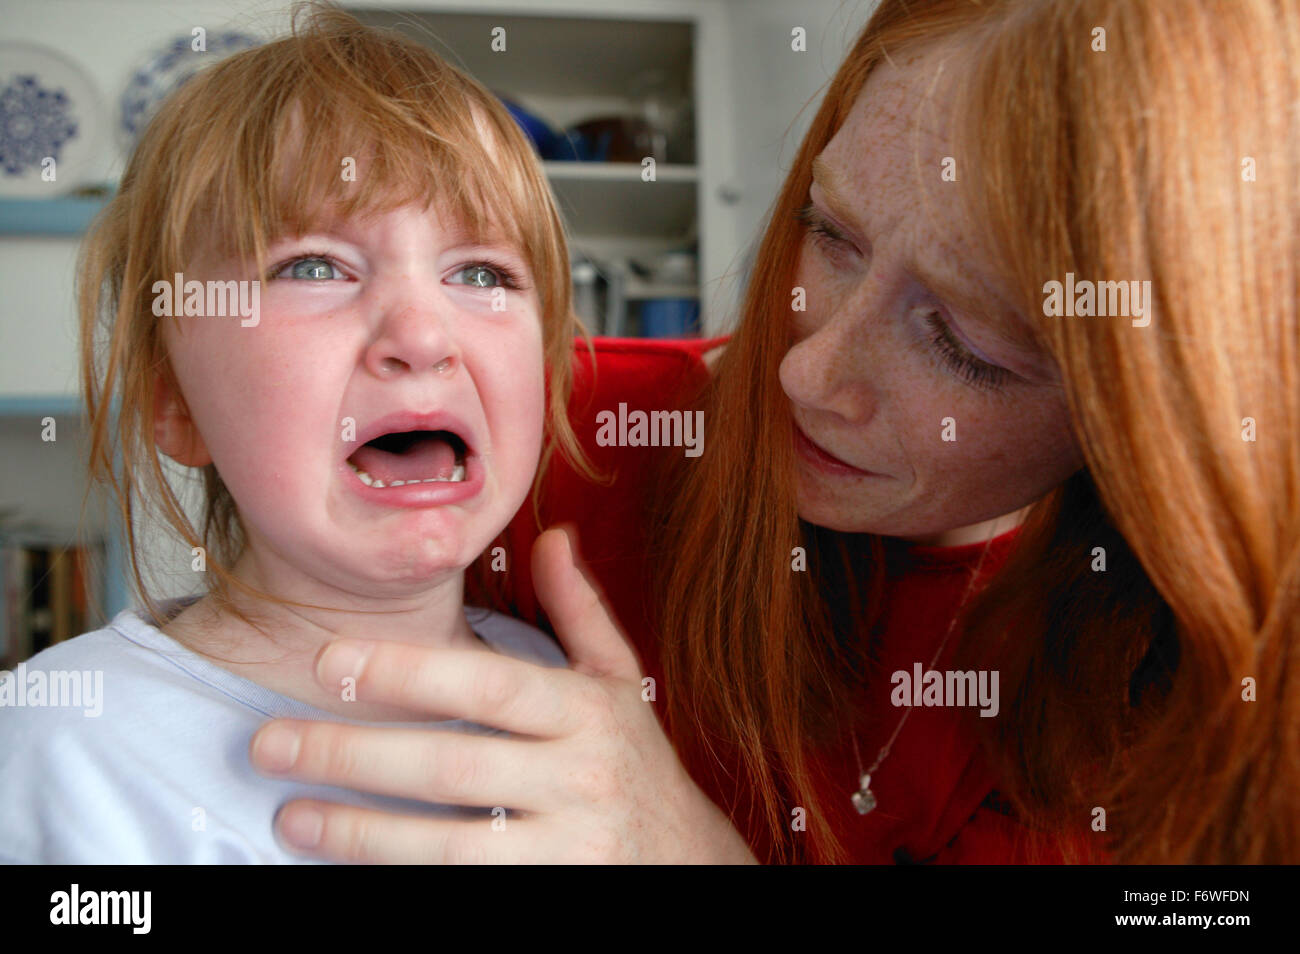 Stressed Mother with tearful young girl, - Stock Image